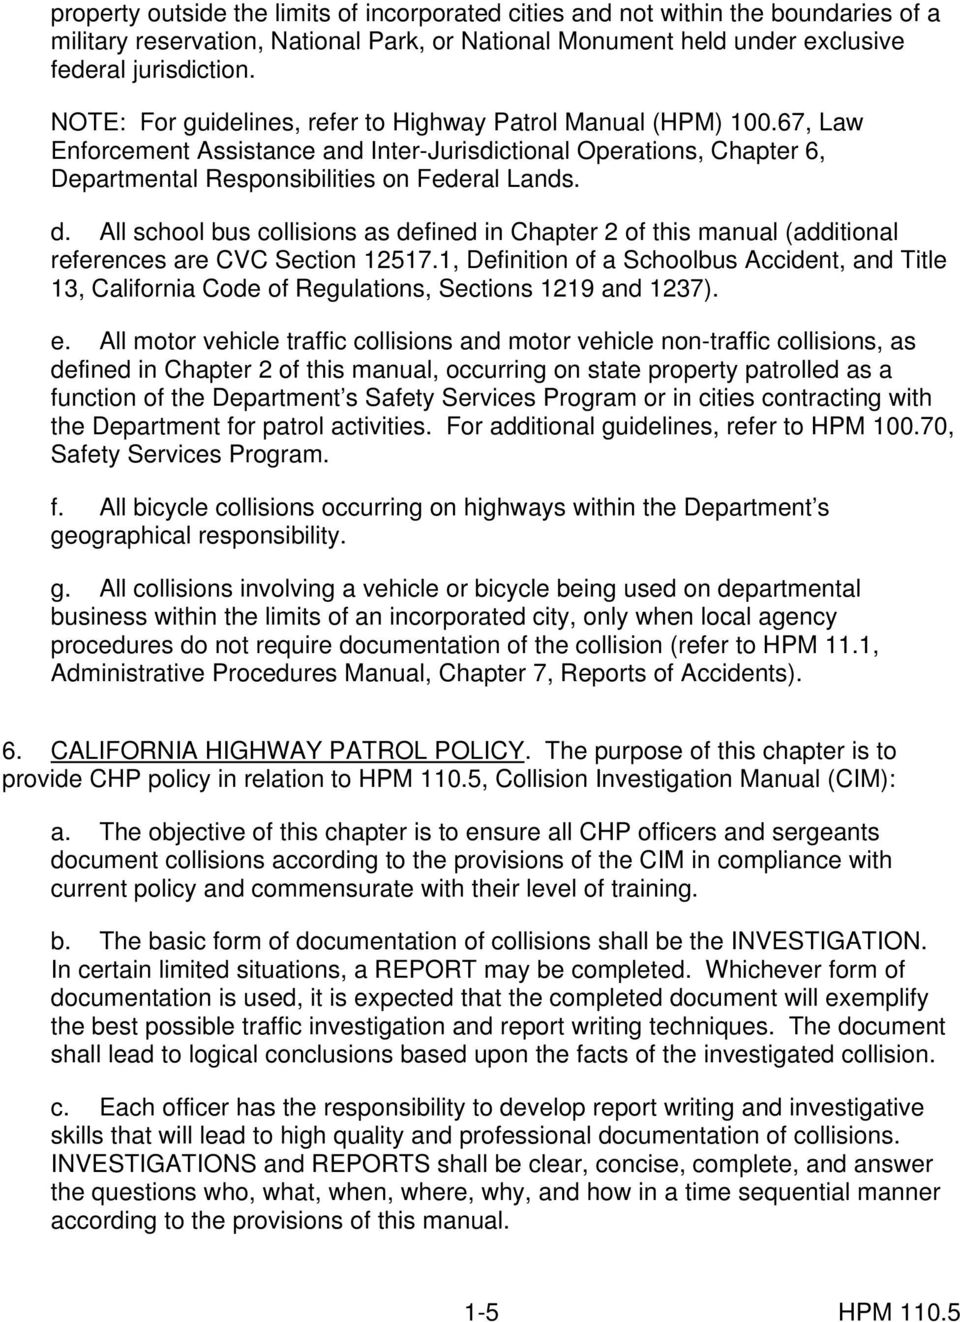 All school bus collisions as defined in Chapter 2 of this manual  (additional references are